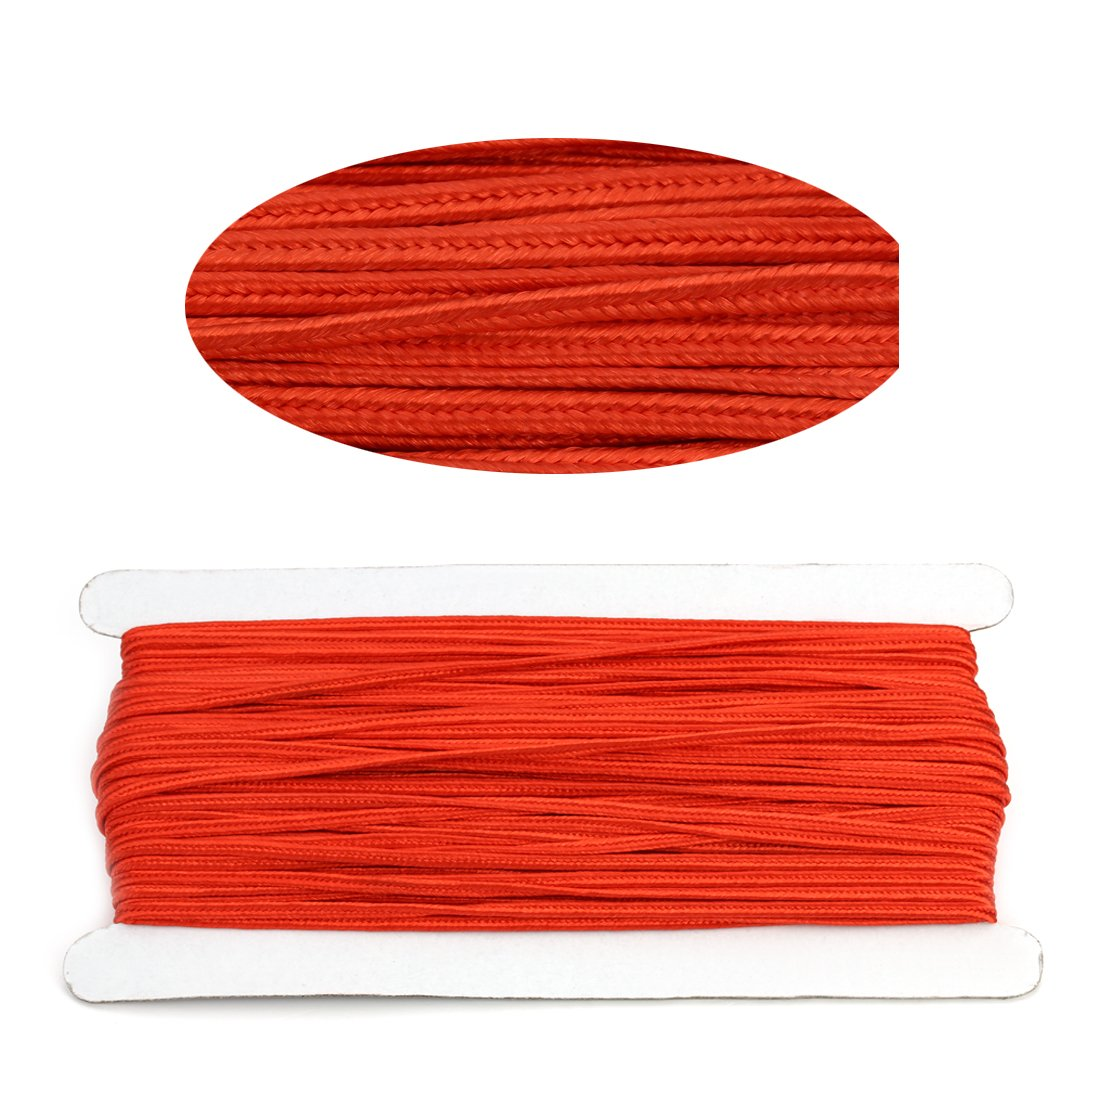 Linsoir Beads 3MM Soutache Braided Cord String Beading Sewing Quilting Trimming Red Color 34 Yards//31 Meters